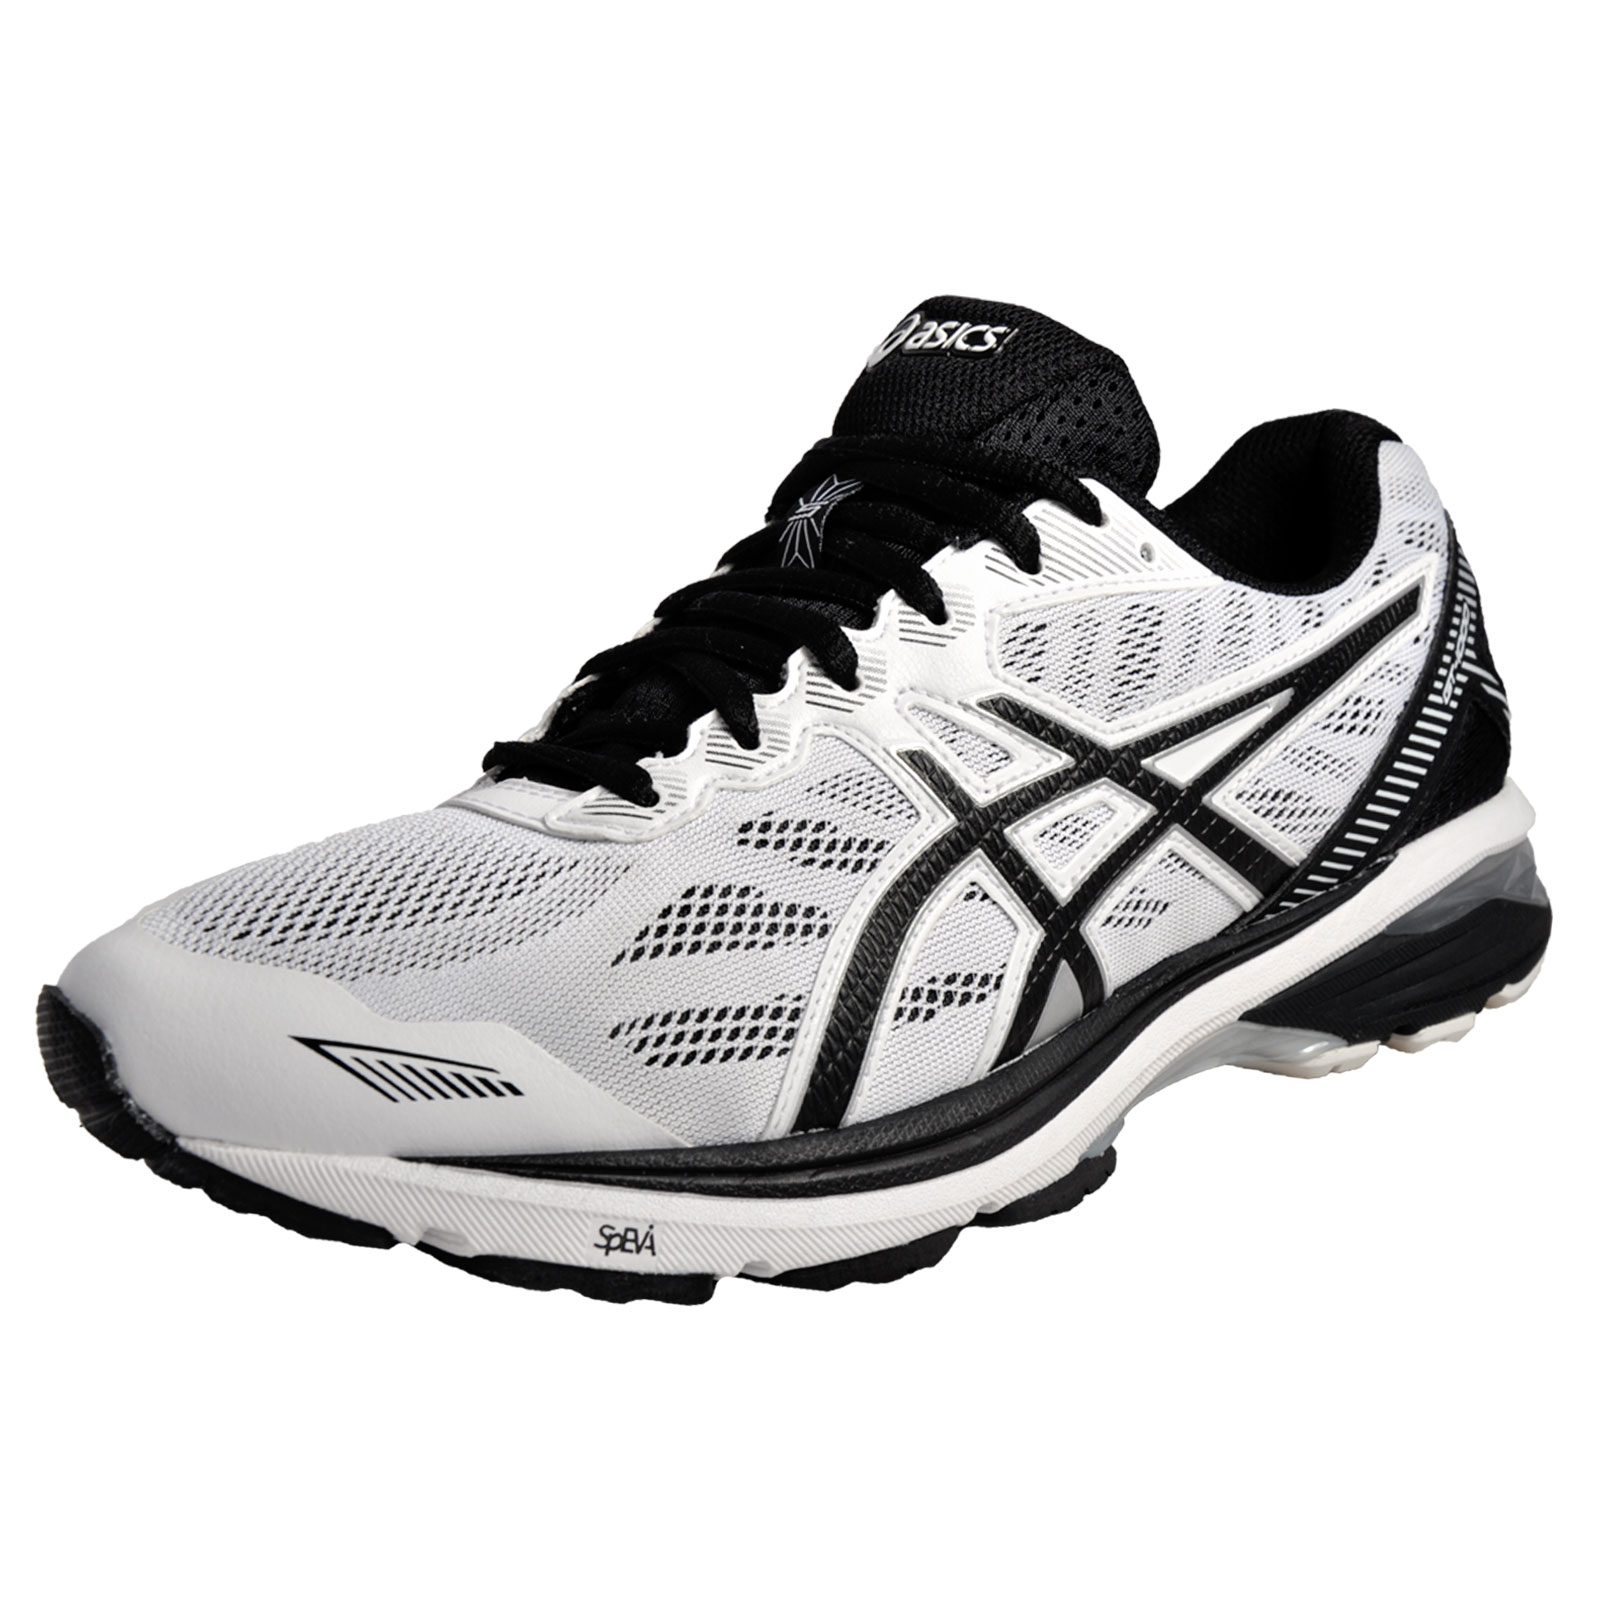 asics gt 1000 5 mens superior running shoes gym fitness trainers white ebay. Black Bedroom Furniture Sets. Home Design Ideas